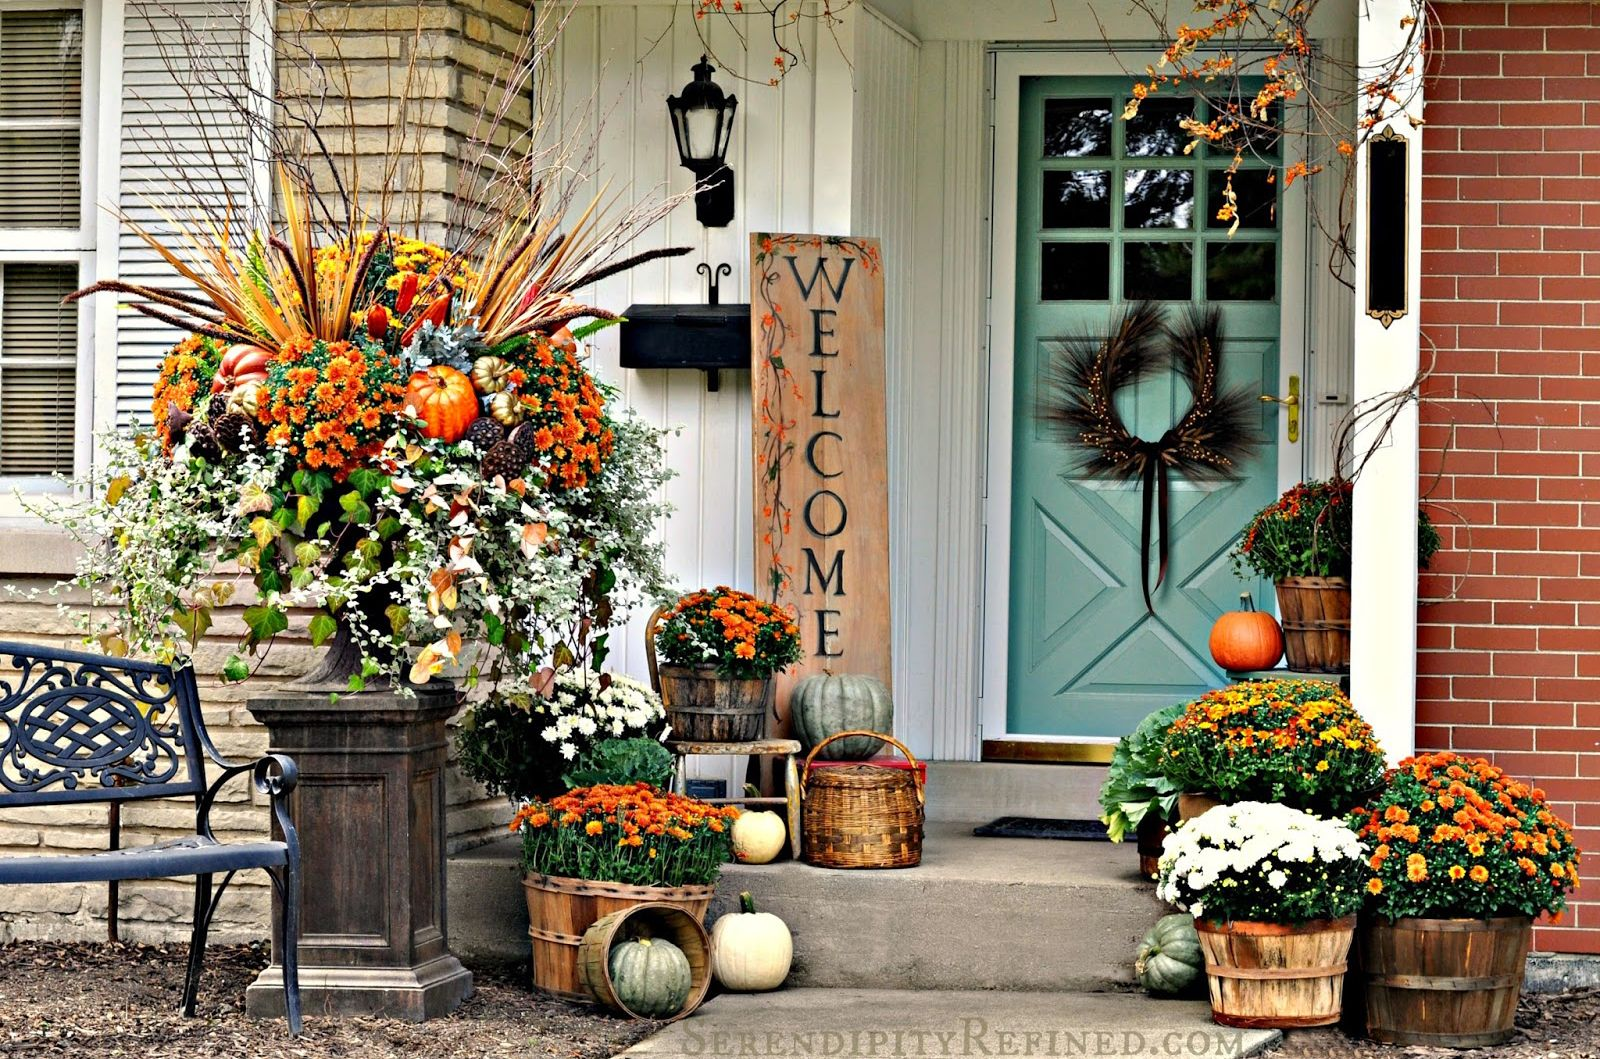 55 Fall Porch Decorating Ideas - Outdoor Fall Decor